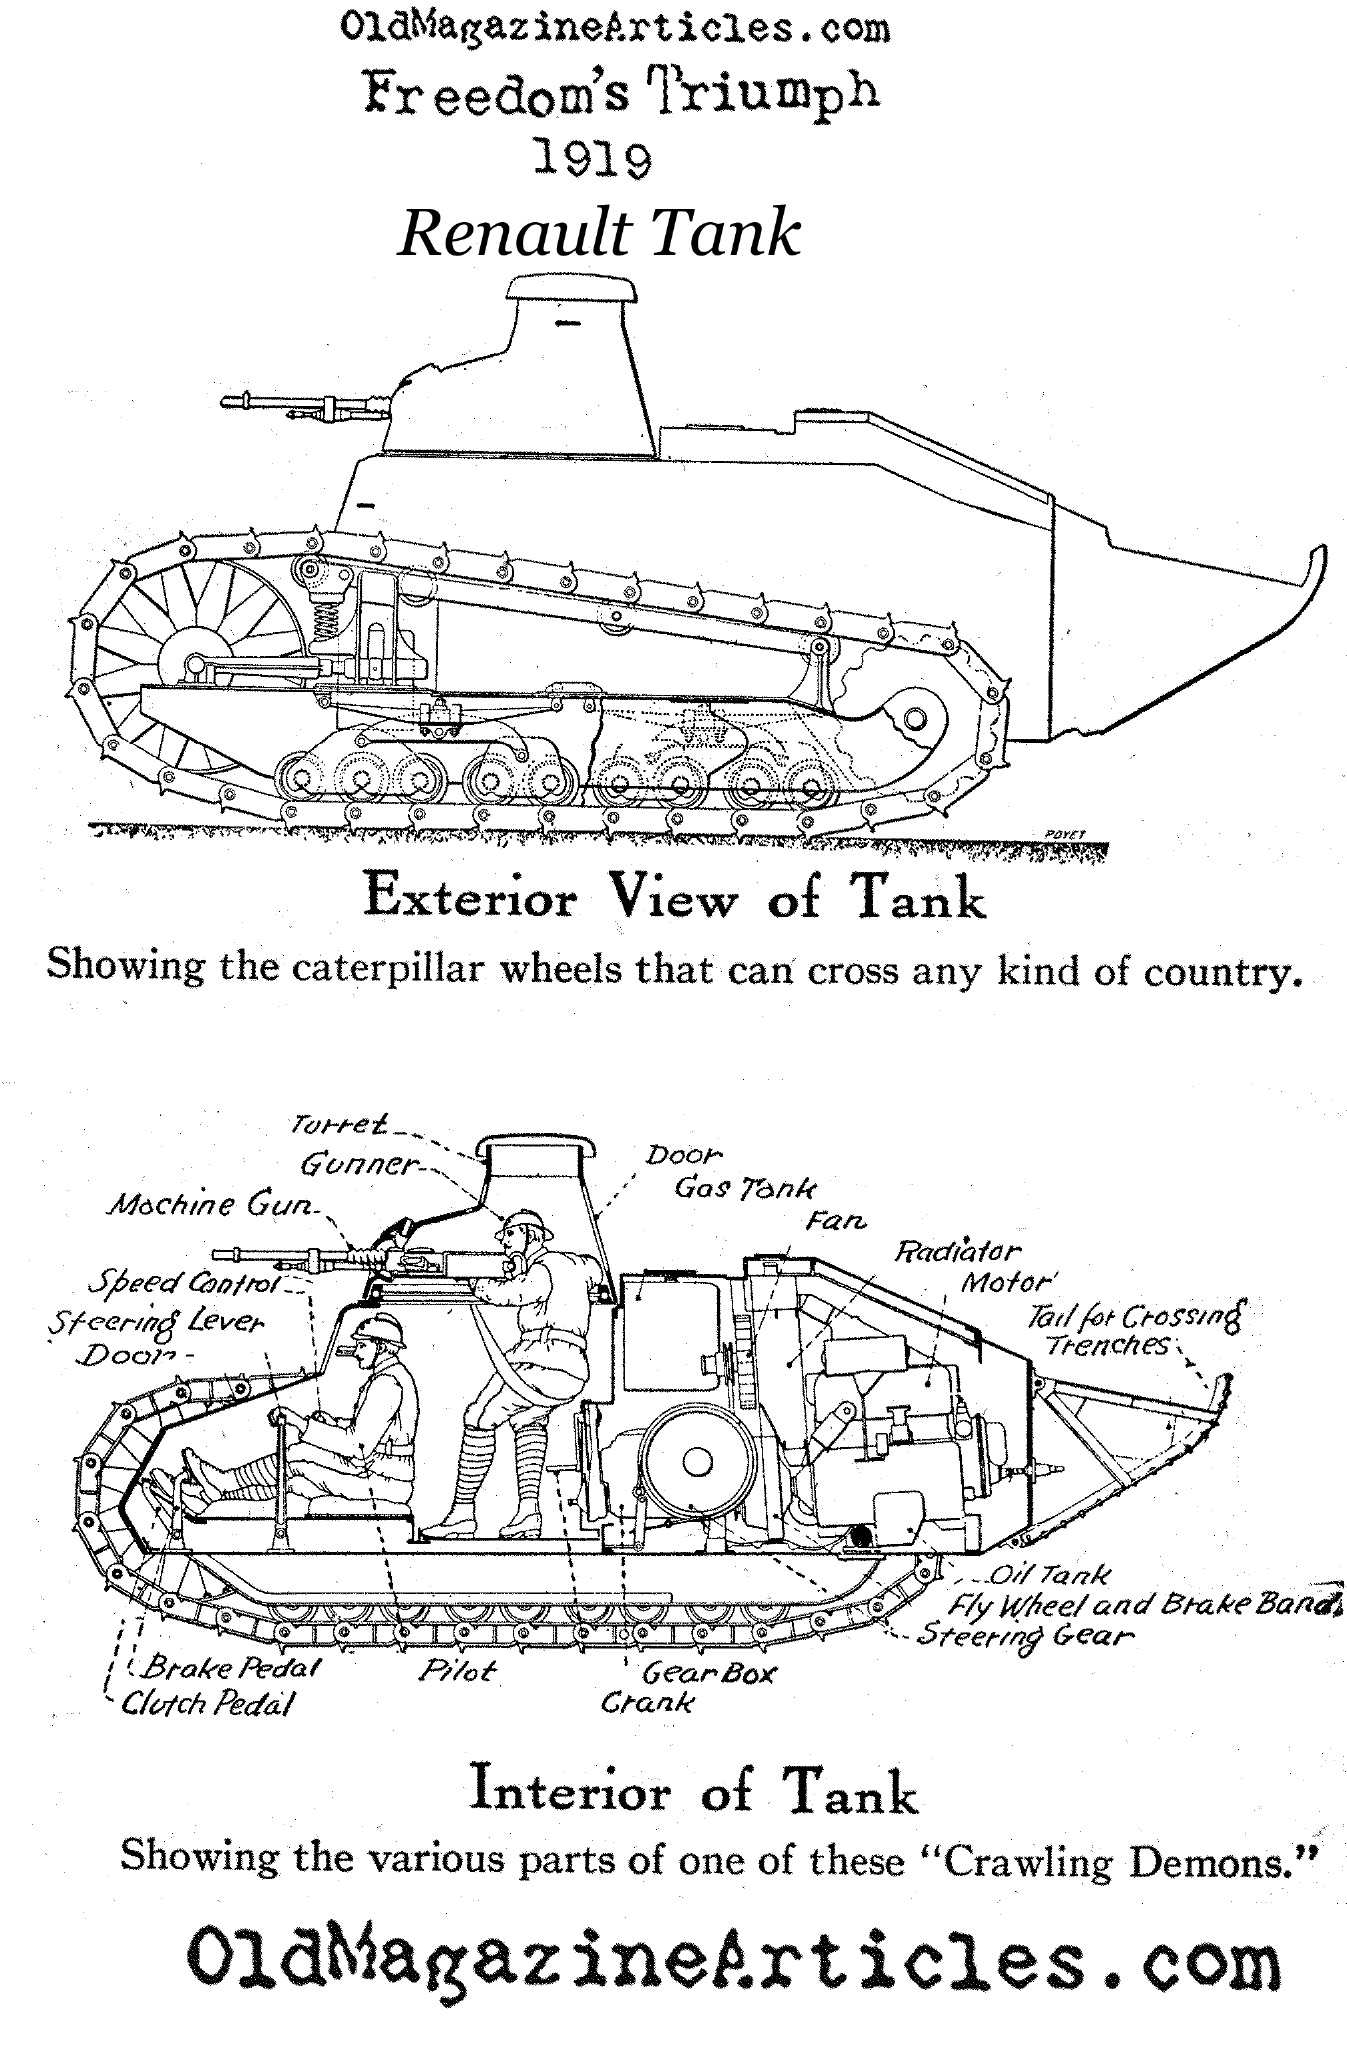 A Diagram of the French Renault Tank (Freedom's Triumph, 1919)